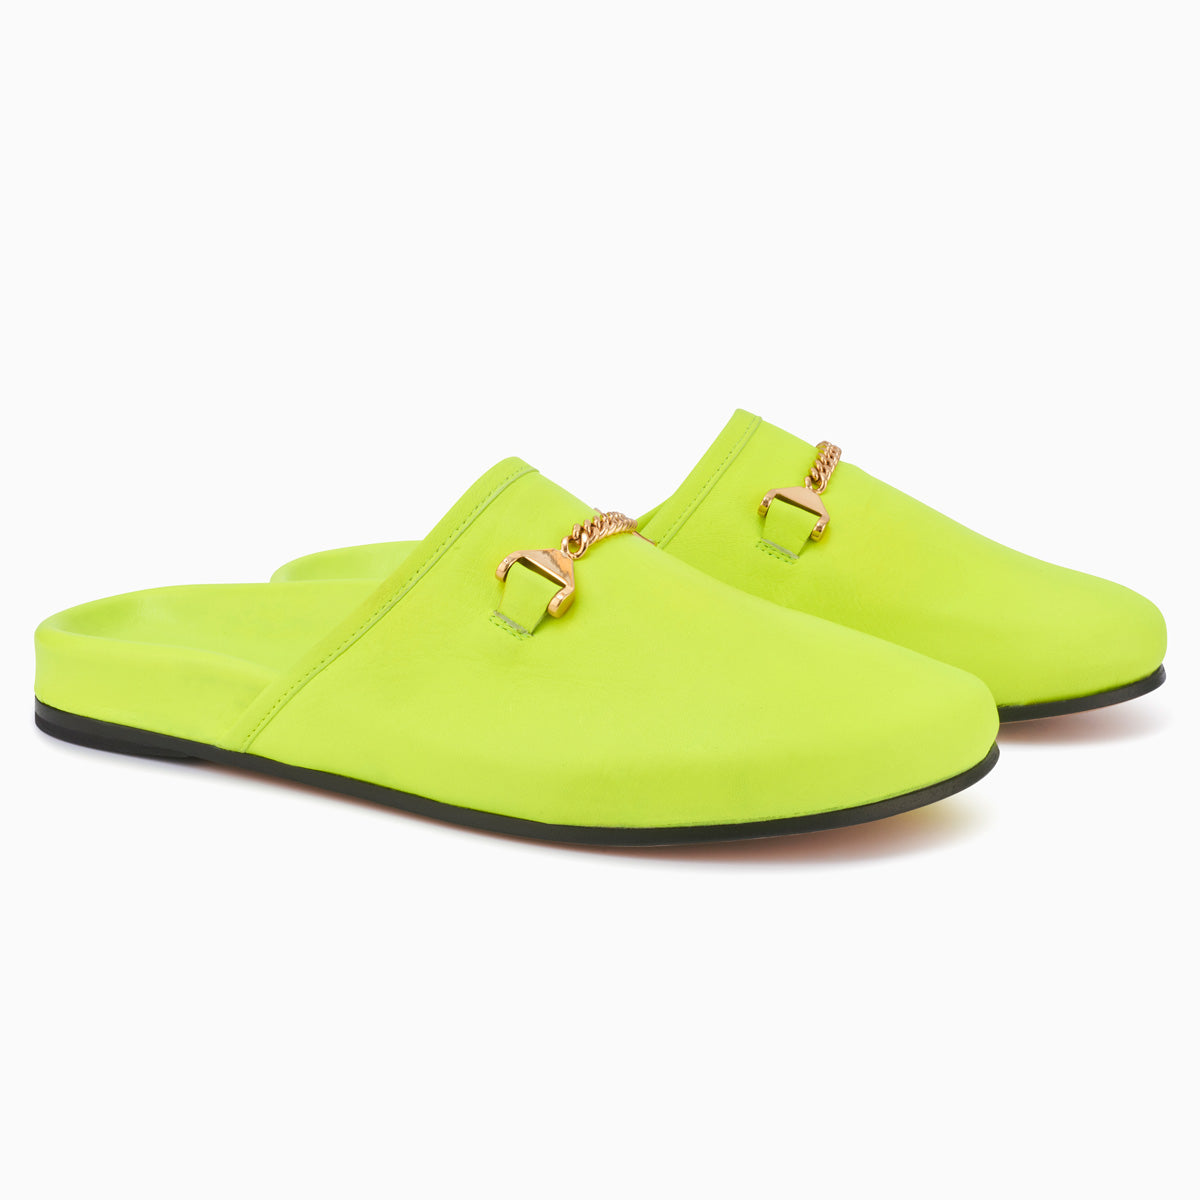 Hyusto Quincy Neon Yellow Glove 3/4 view pair